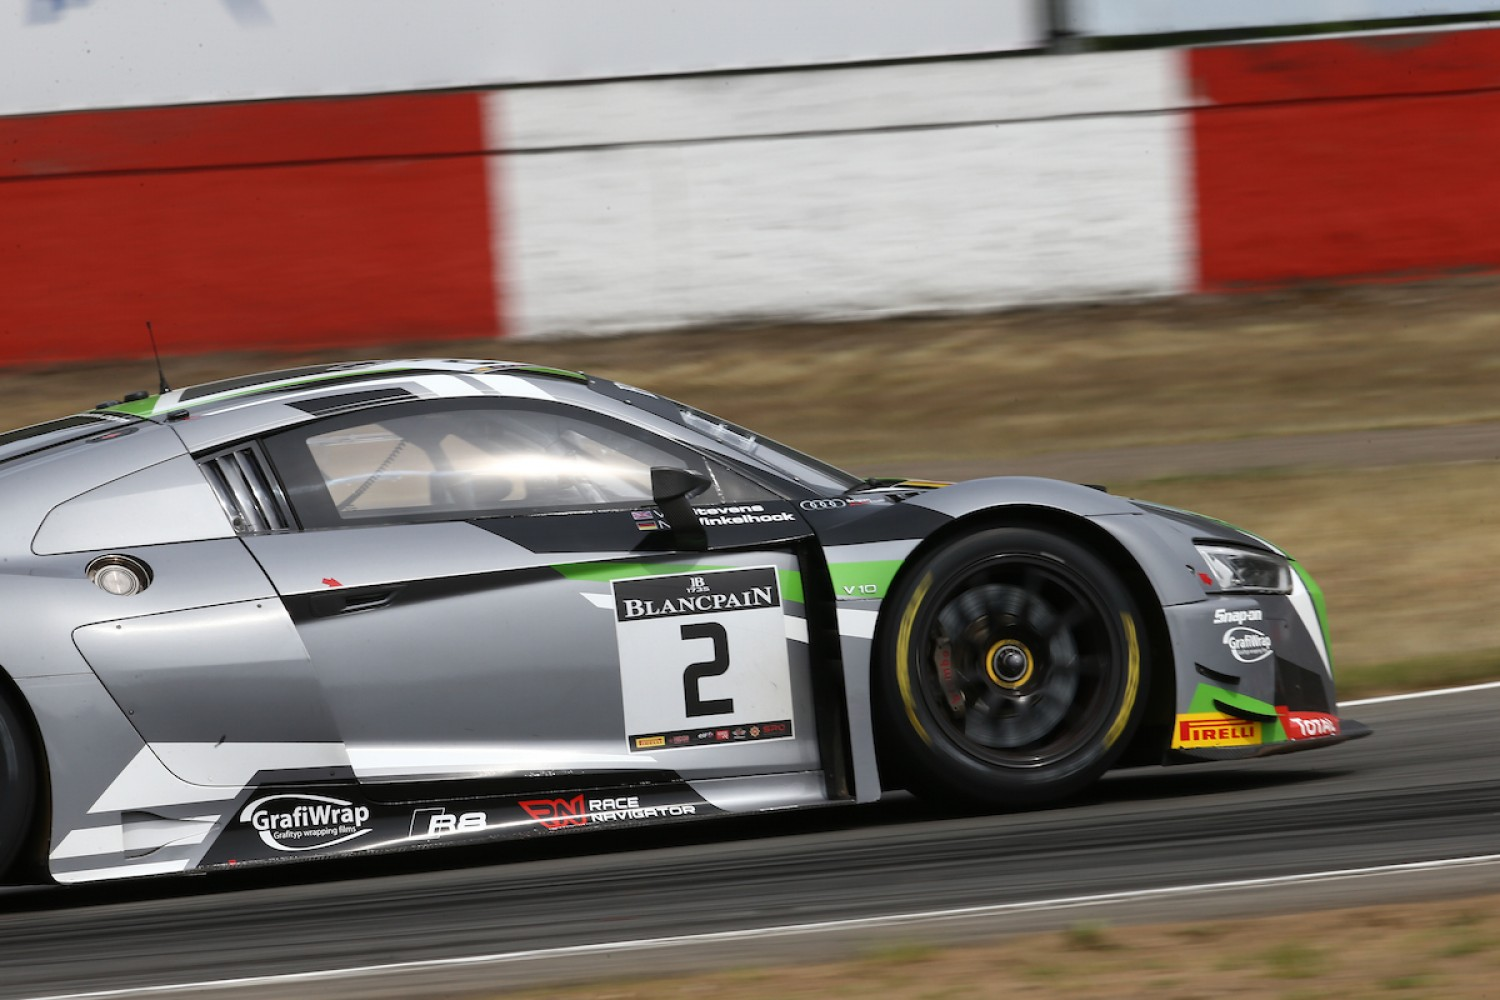 Stevens and Winkelhock take deserved win in Zolder